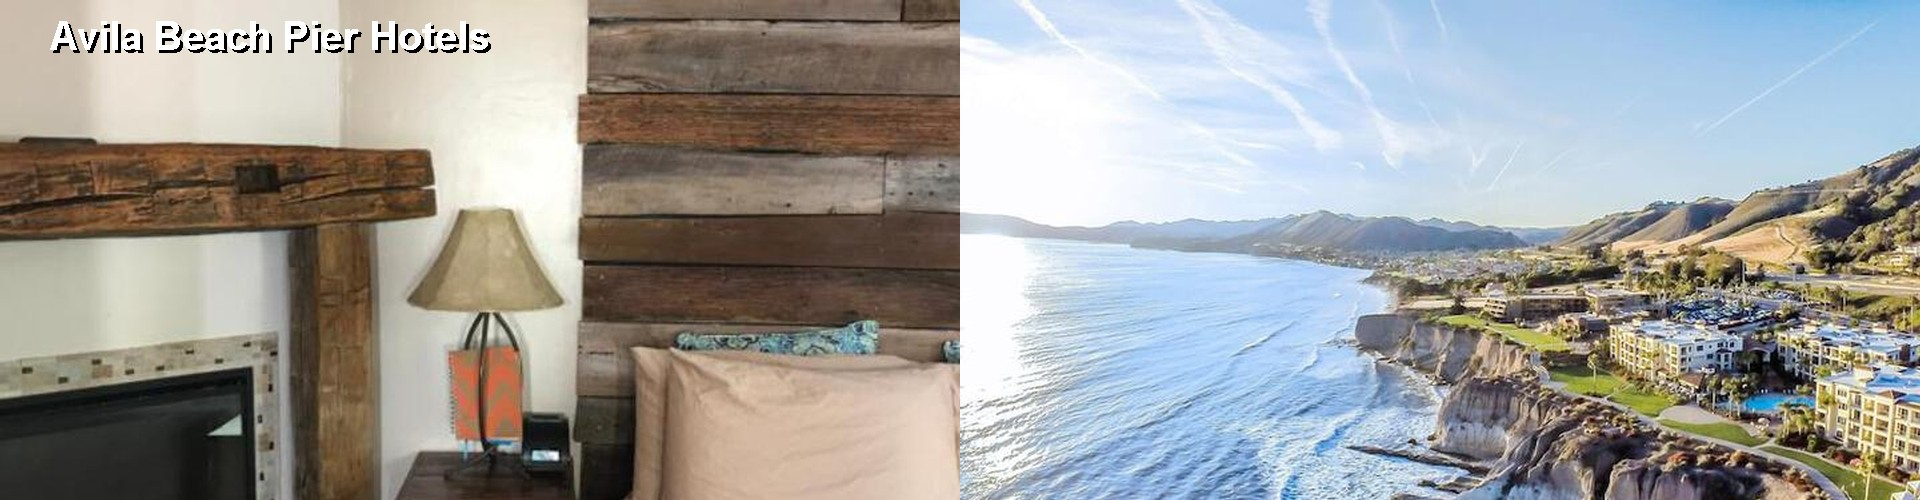 5 Best Hotels near Avila Beach Pier